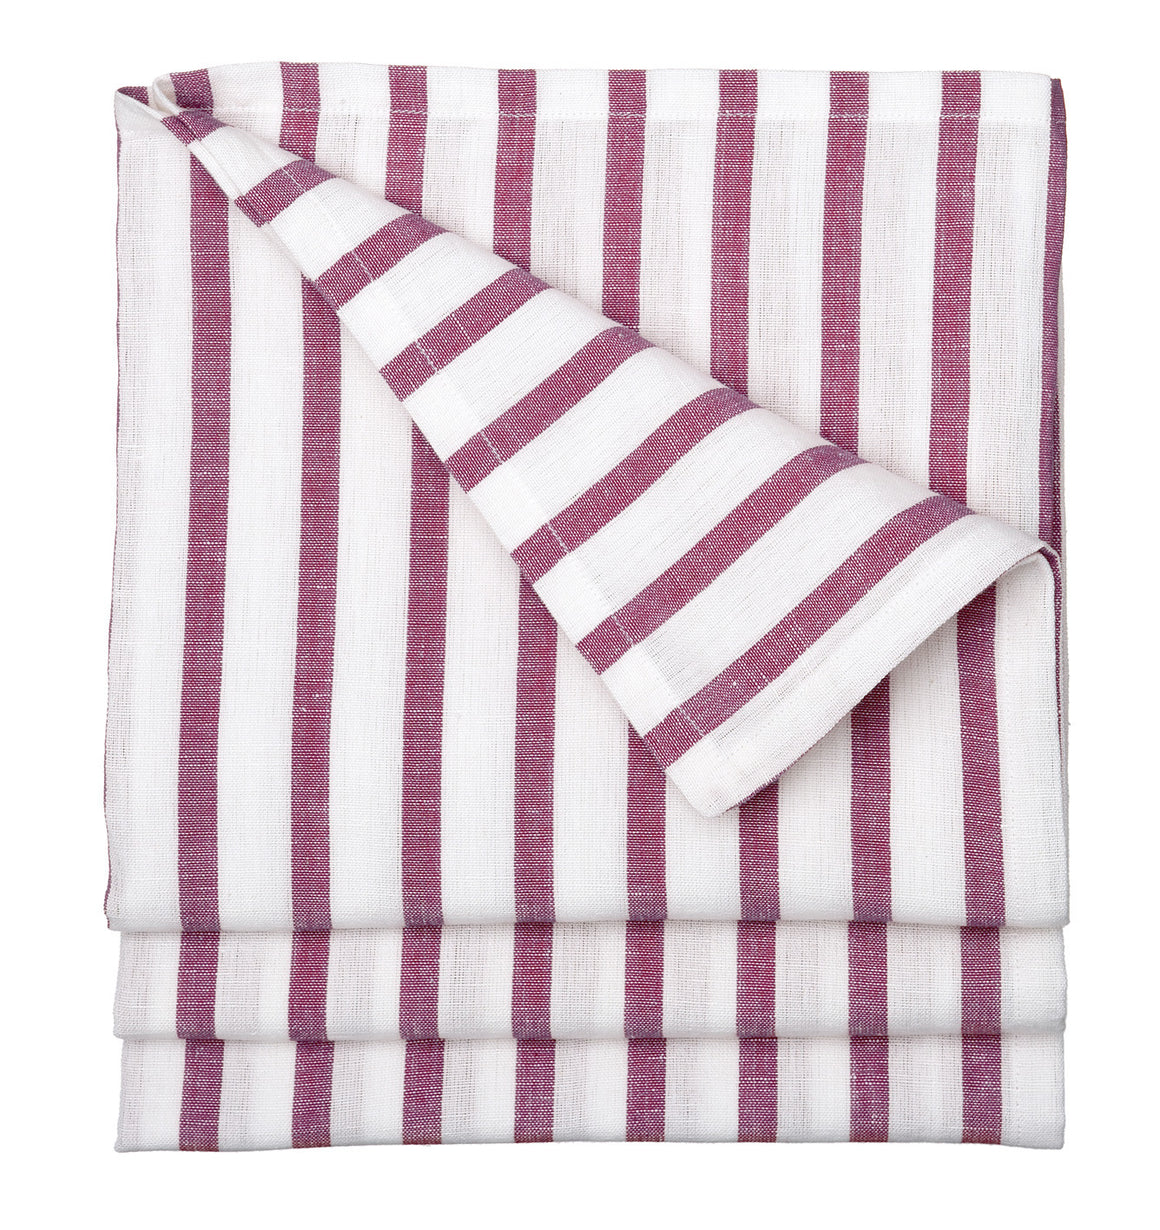 Autumn Ticking Stripe Cotton Linen Tablecloth in Burgundy Heather Pink Ships from Canada (USA)